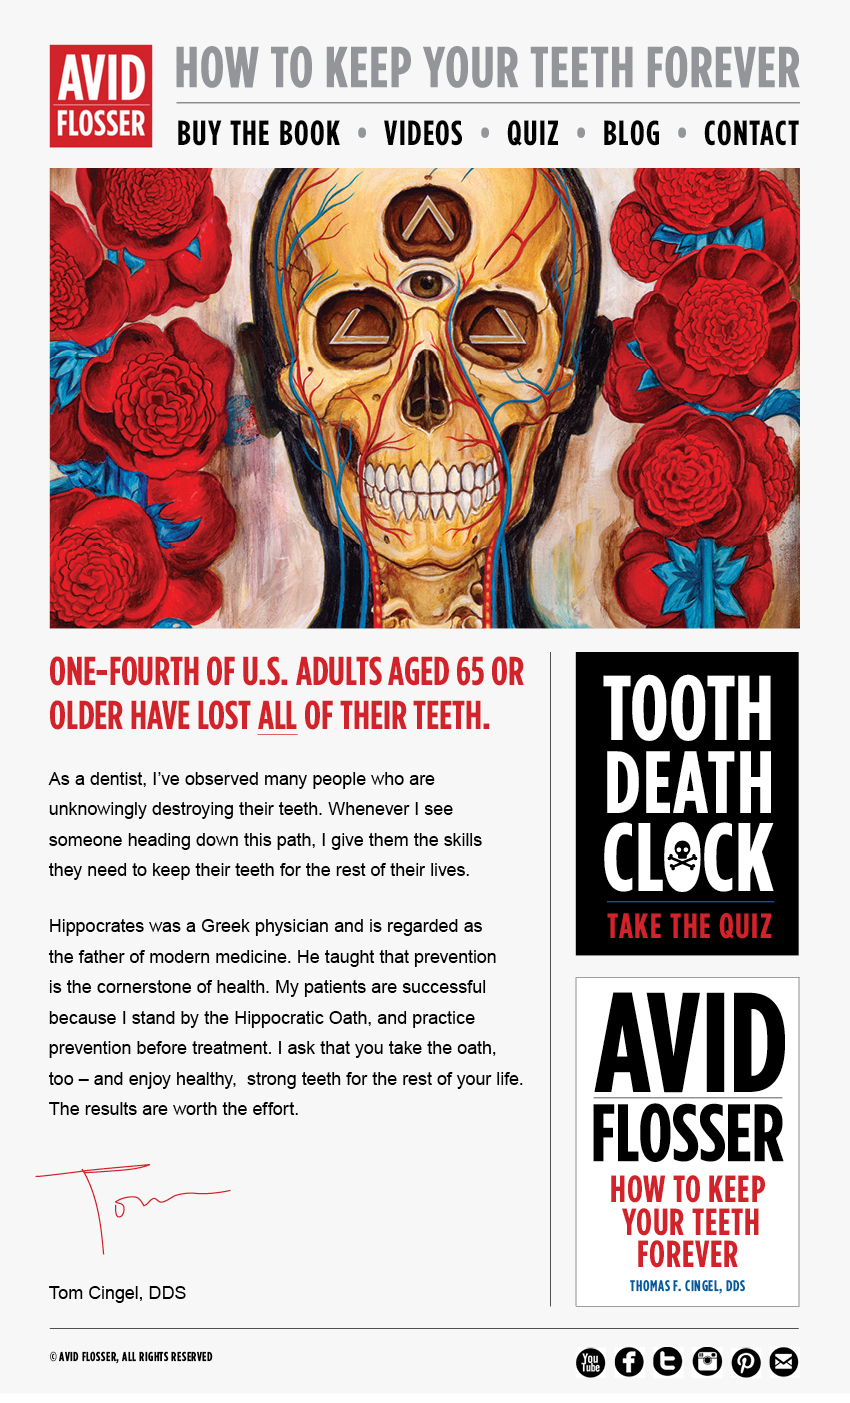 Avid Flosser Tom Cingel DDS Dental Advice Carla Rozman Graphic Design